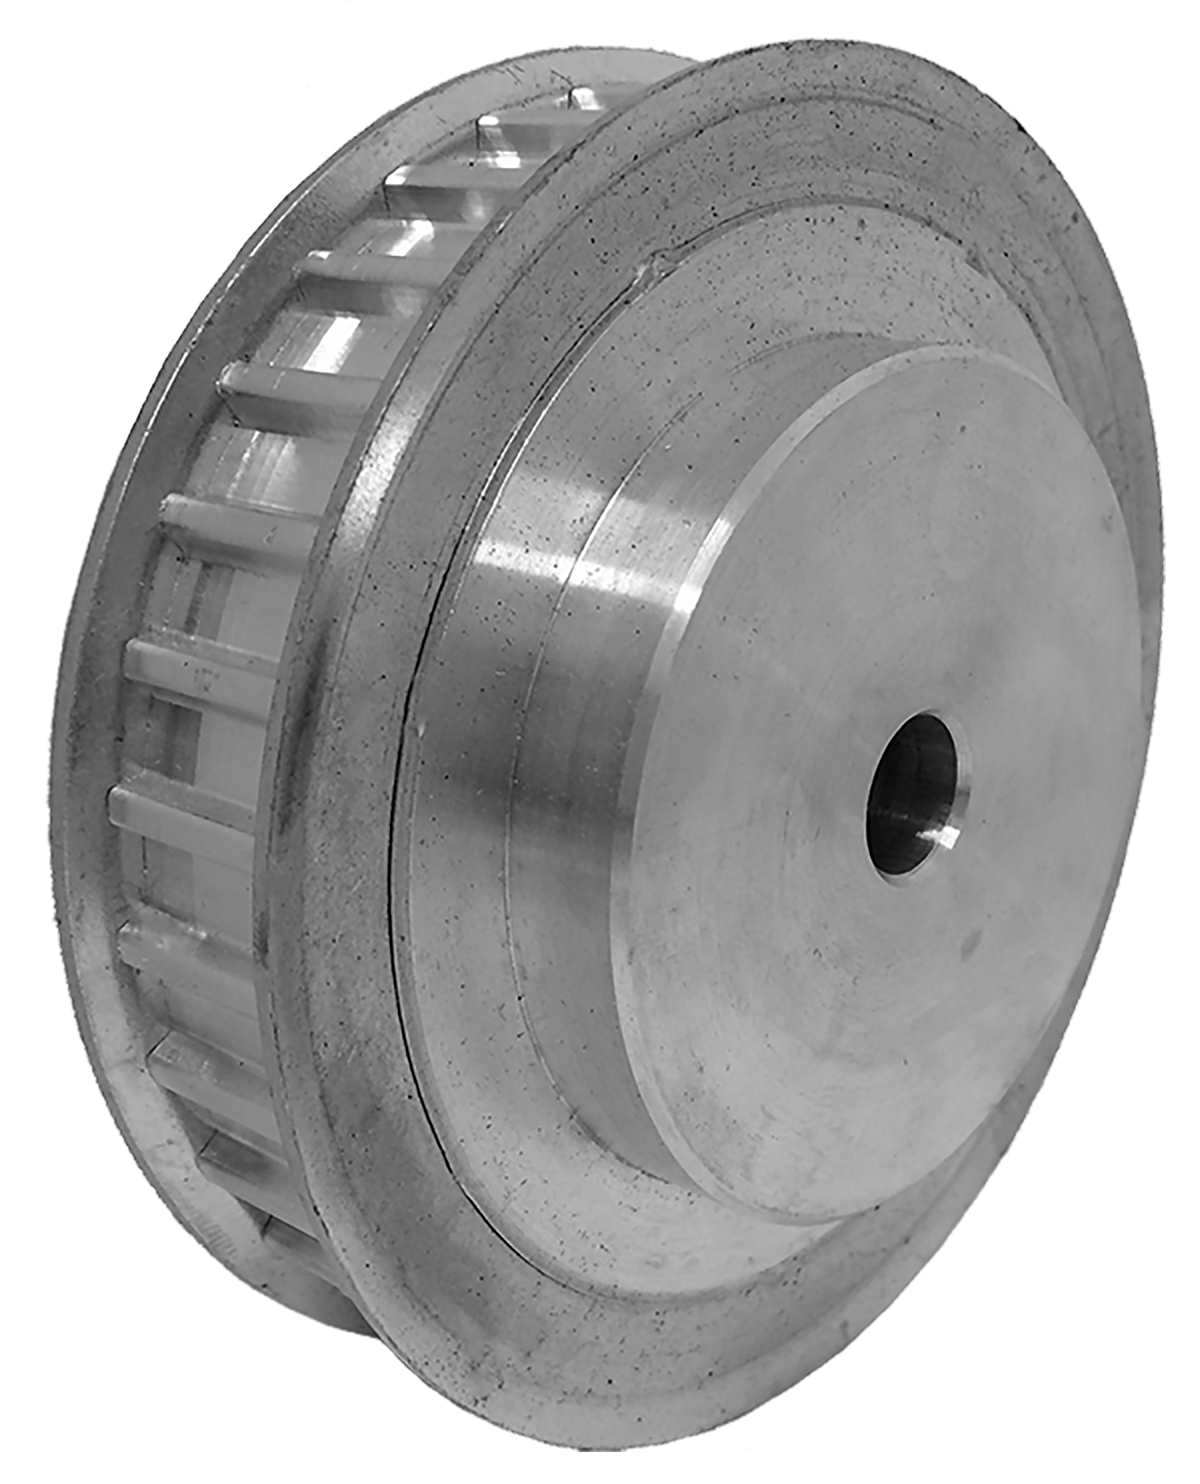 31AT10/32-2 - Aluminum Metric Pulleys